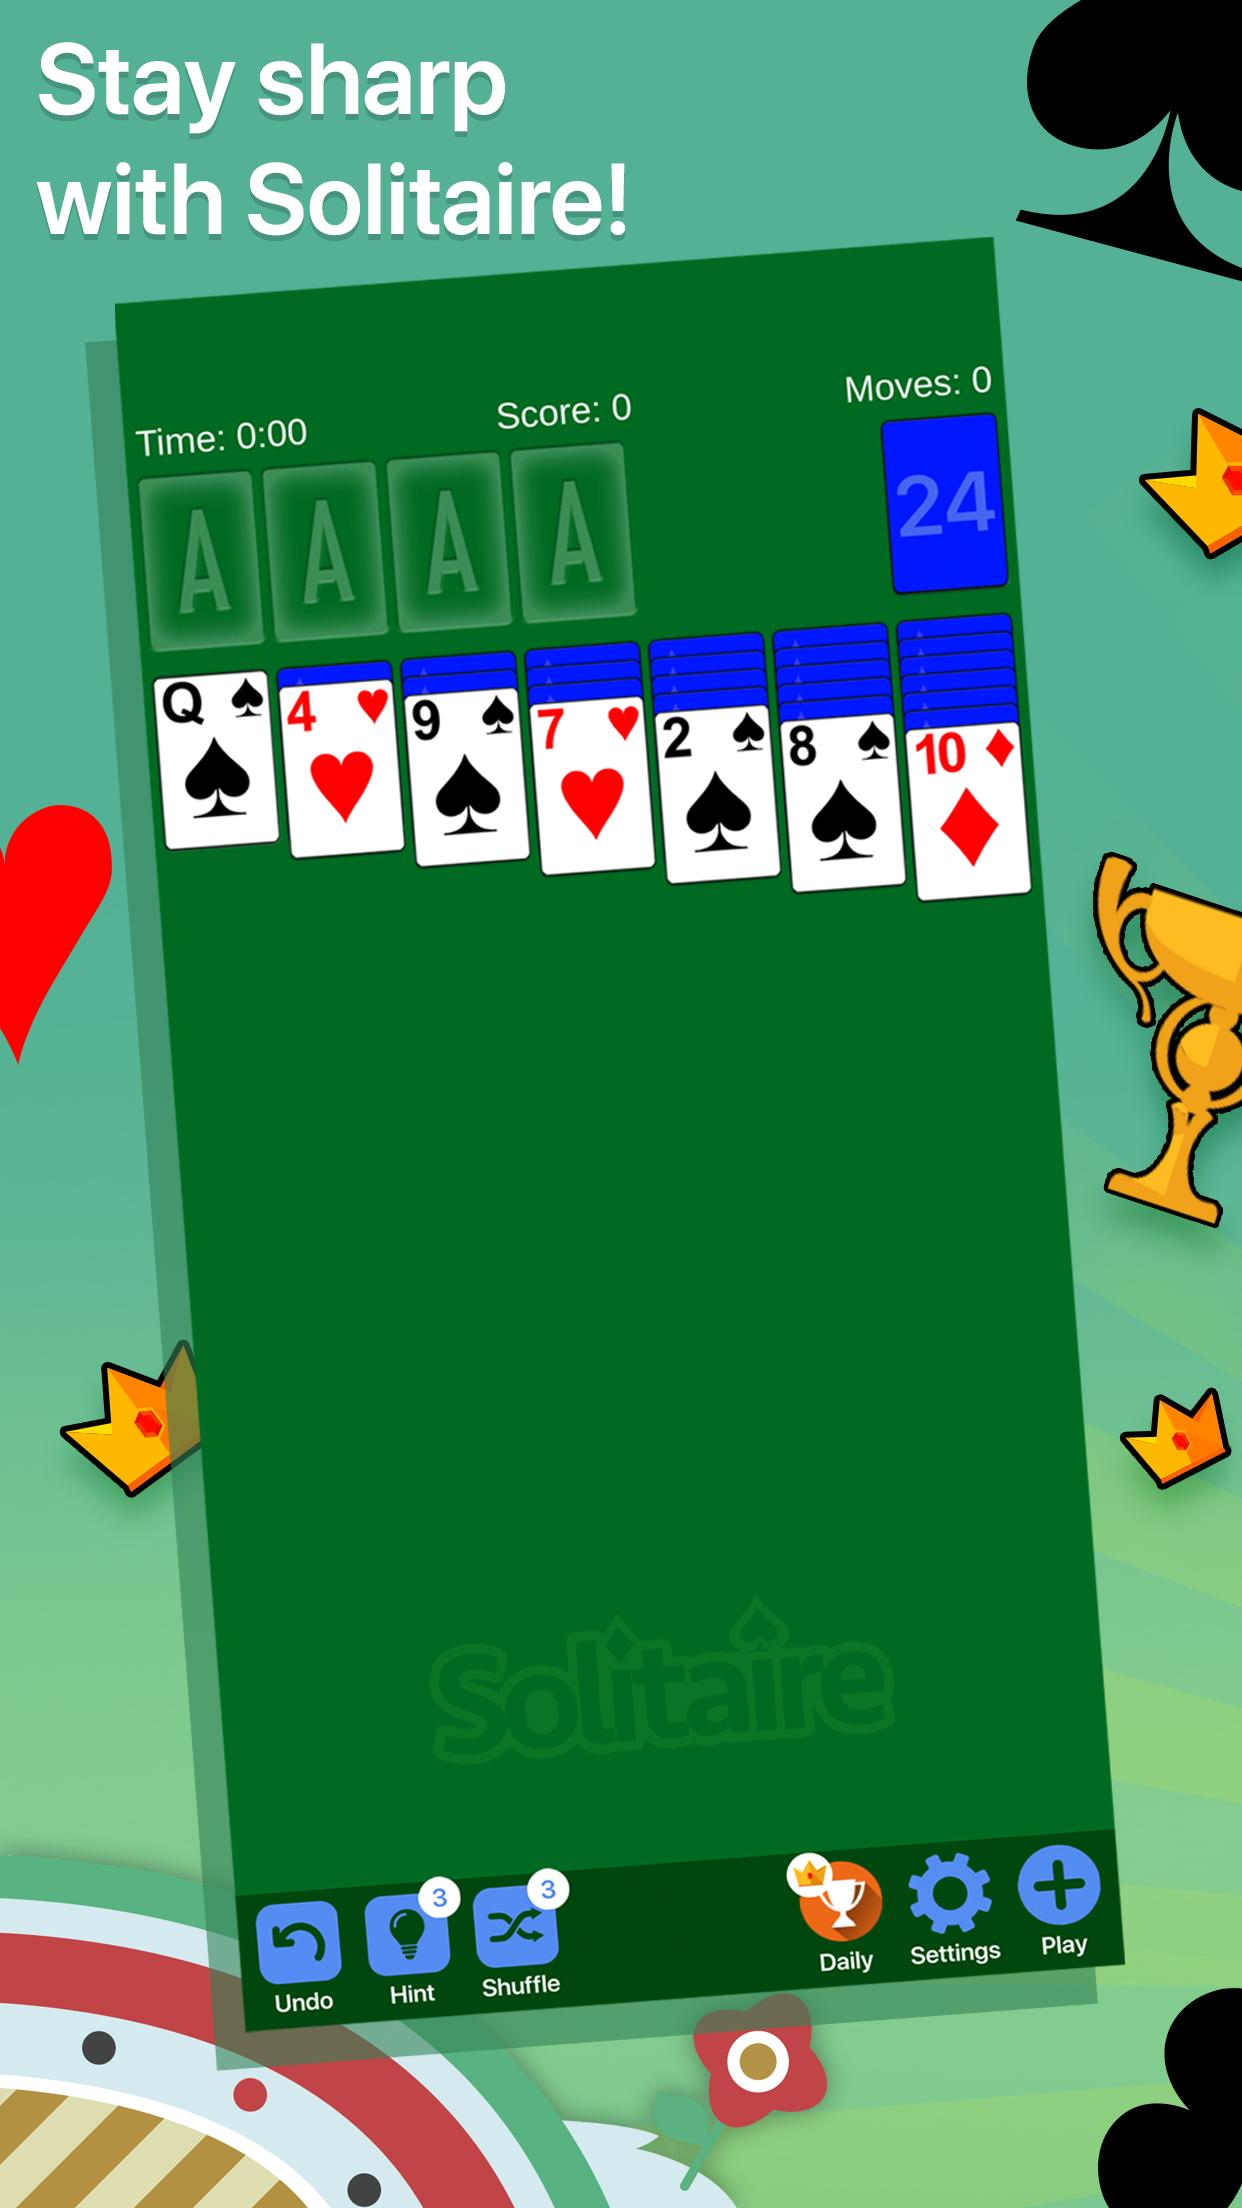 Solitaire 8.4.1 Screenshot 8